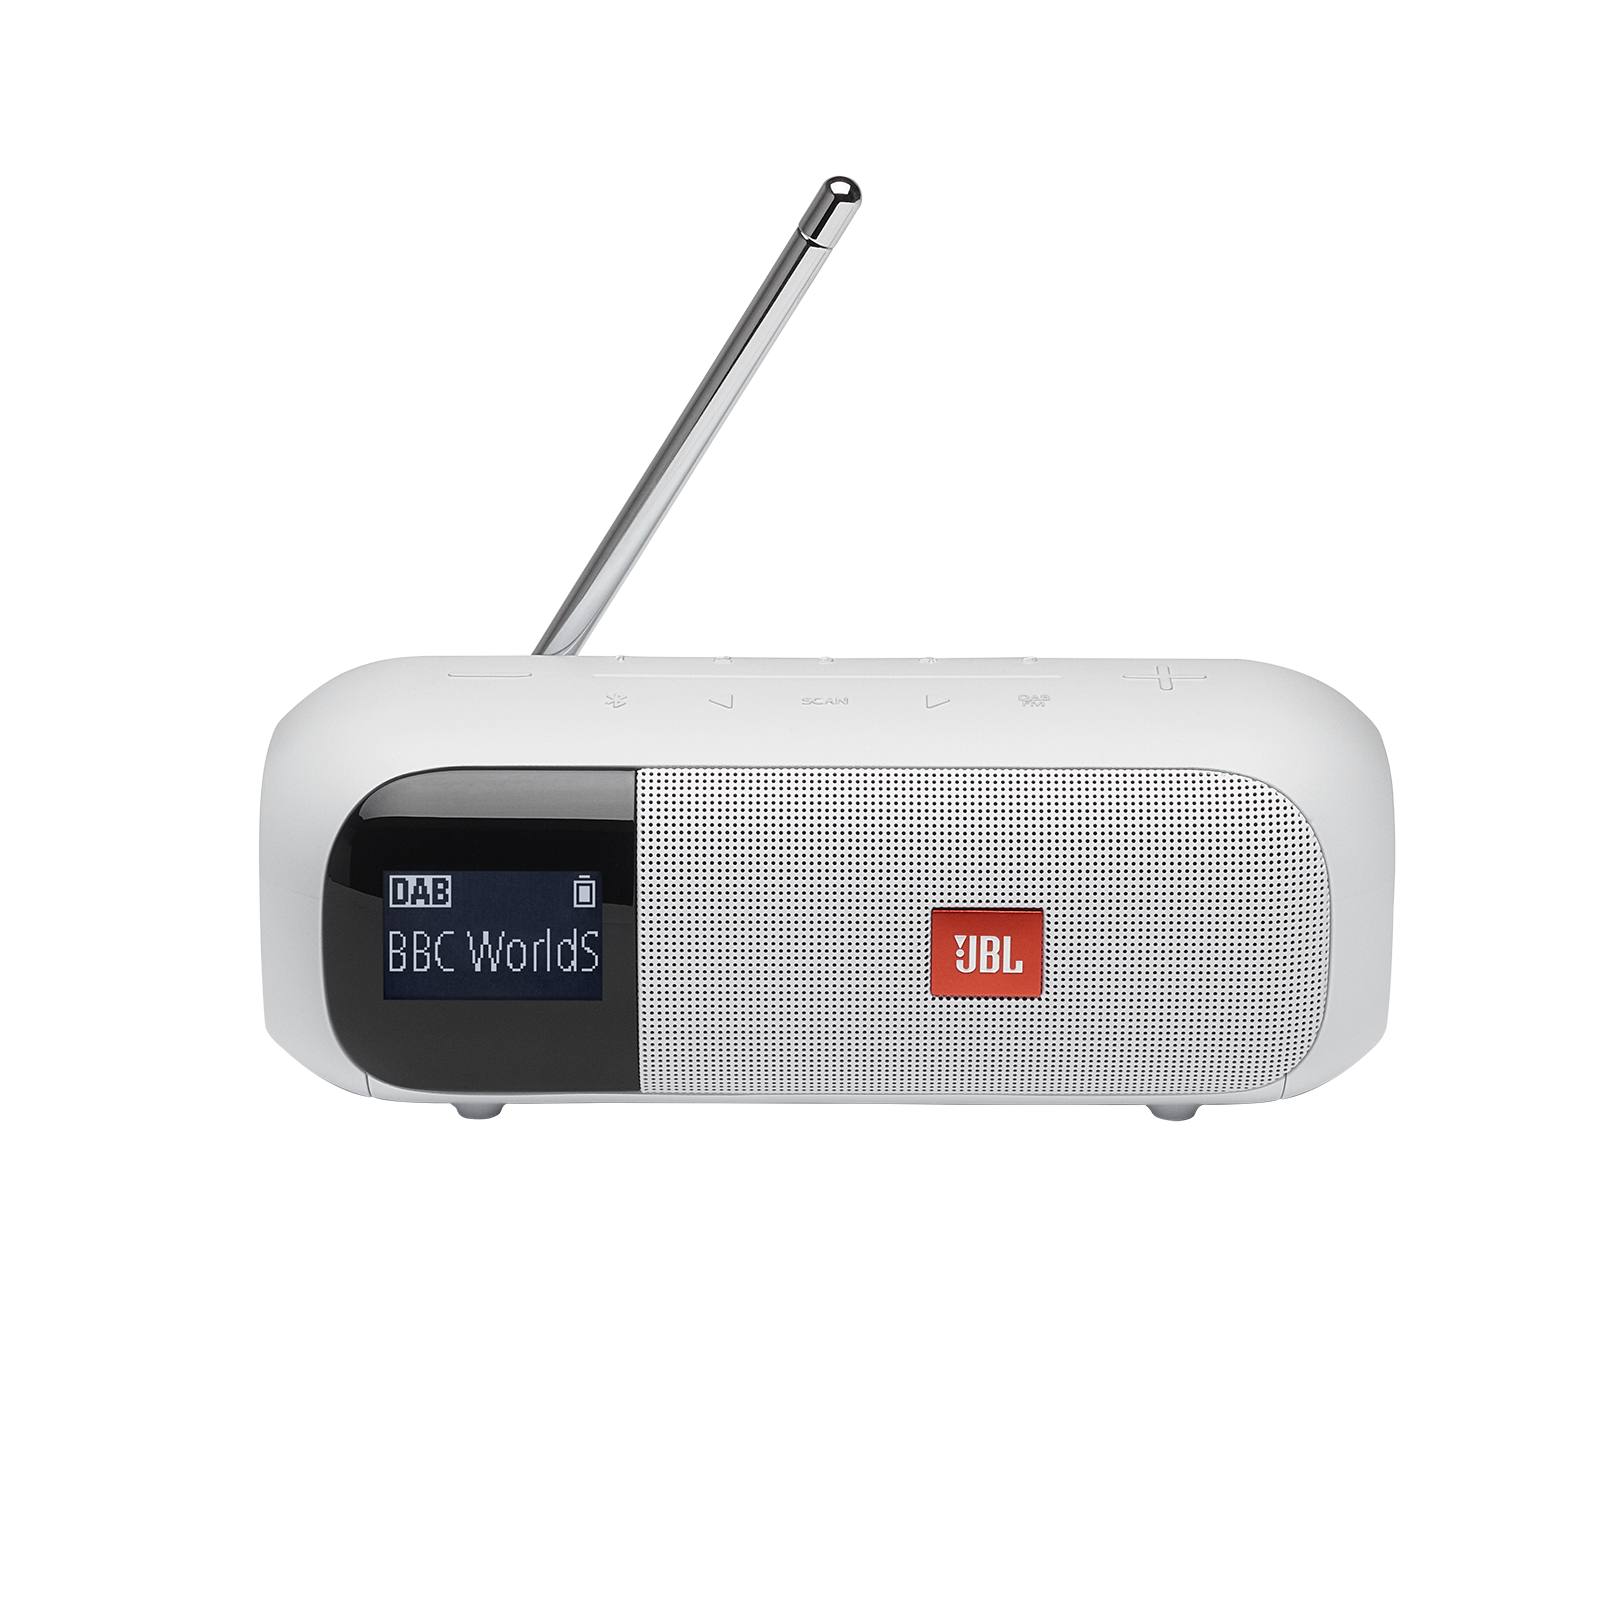 JBL Tuner 2 - White - Portable DAB/DAB+/FM radio with Bluetooth - Front